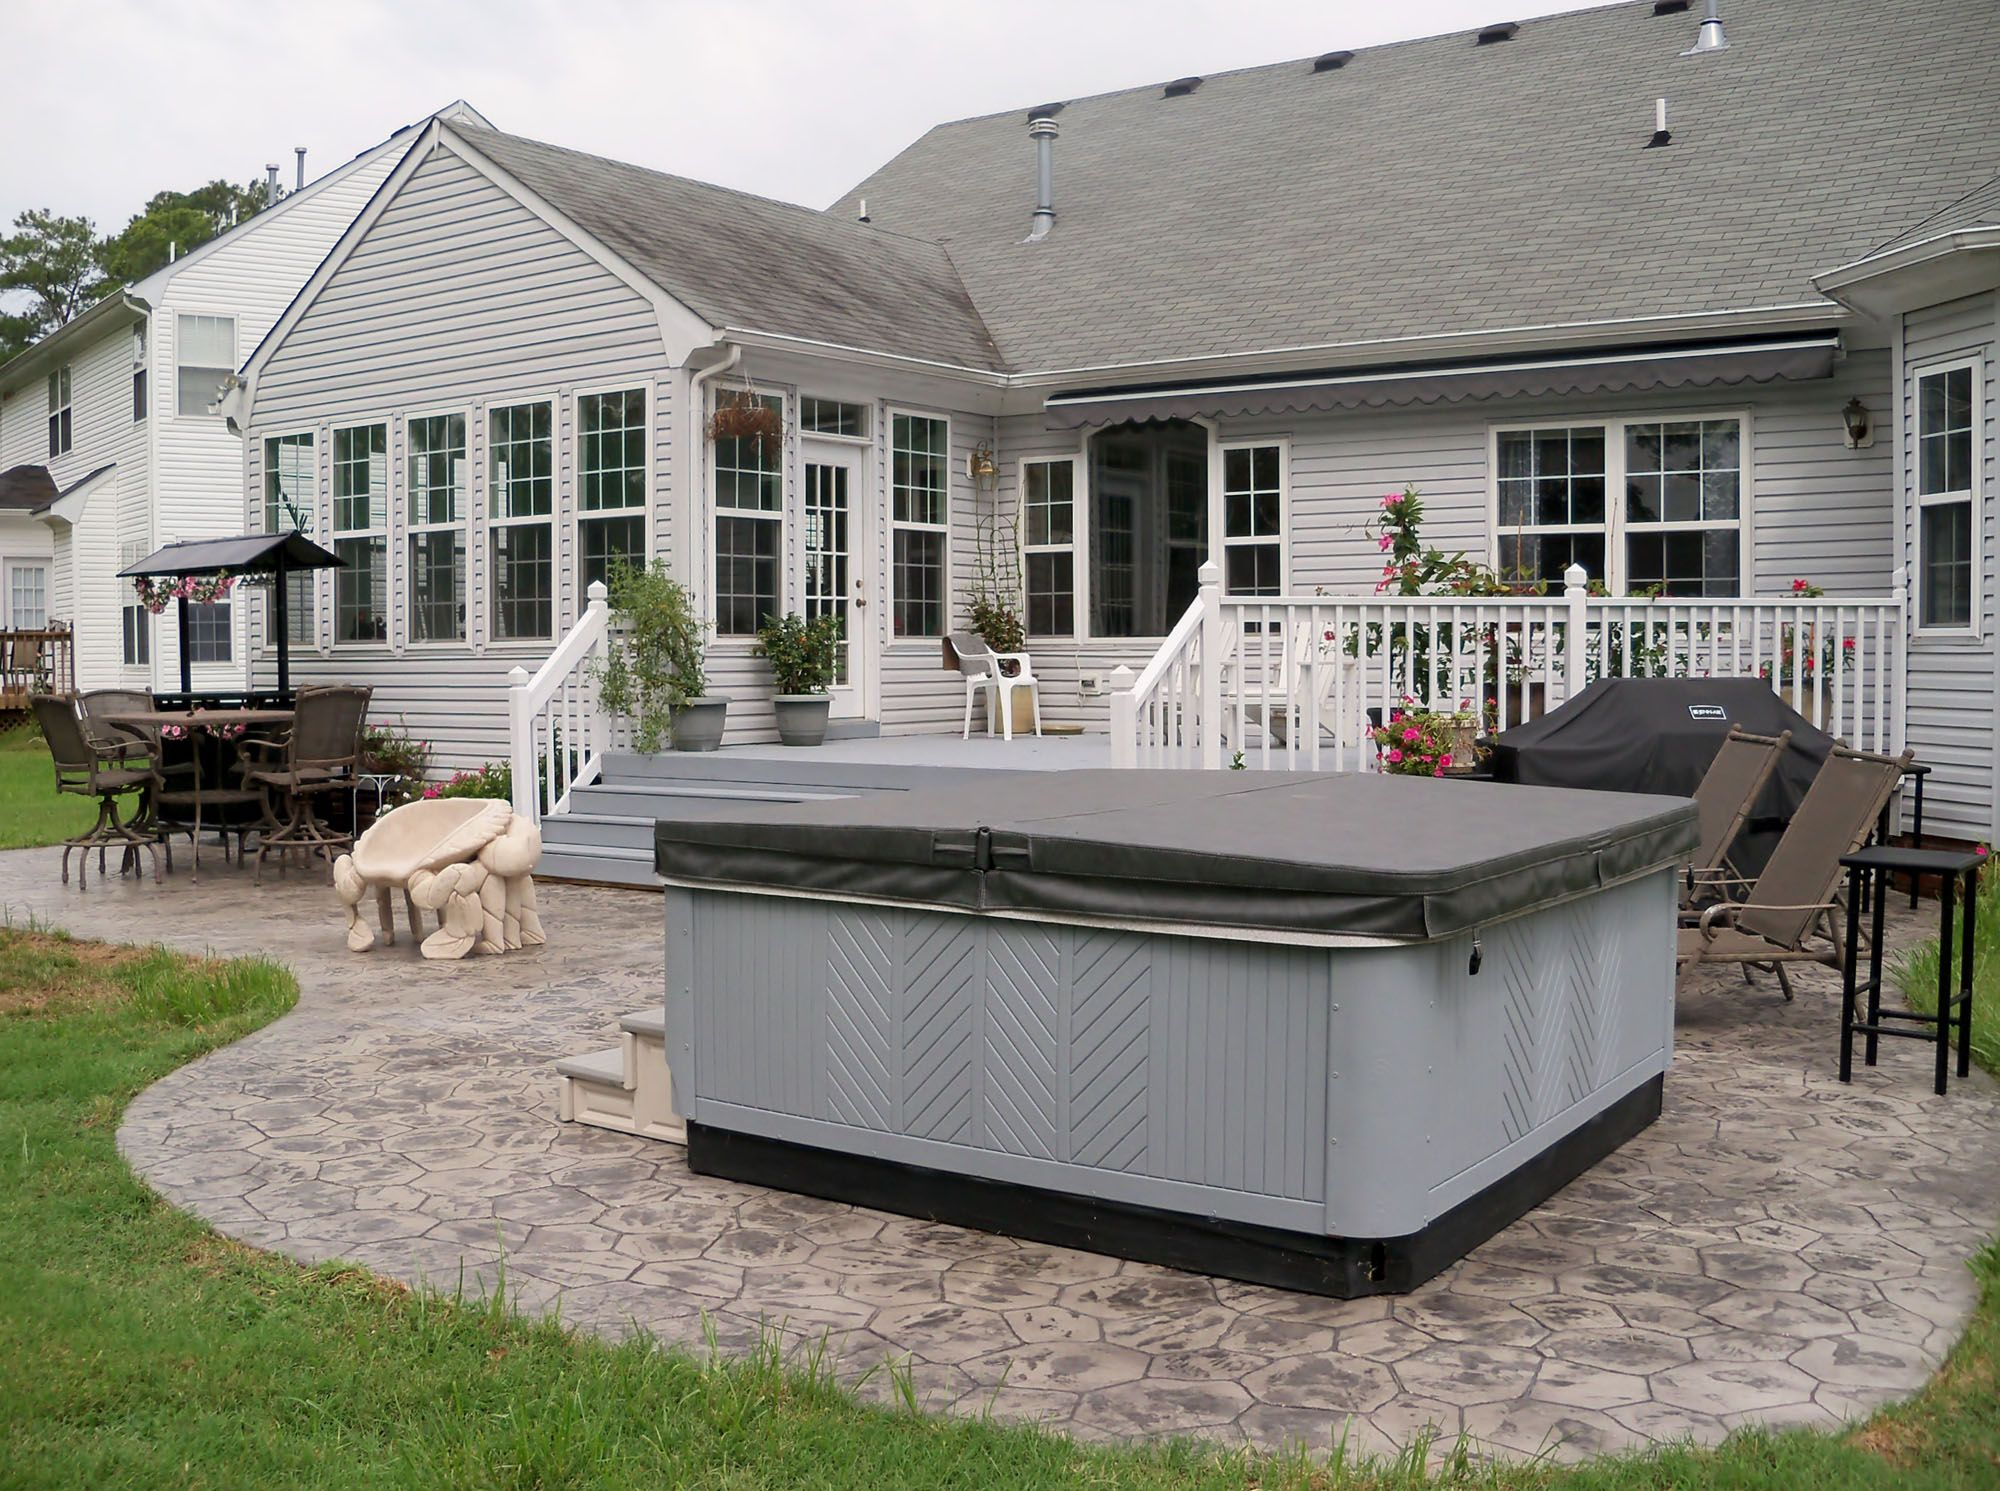 49 best stamped concrete patios images on Pinterest | Backyard ...